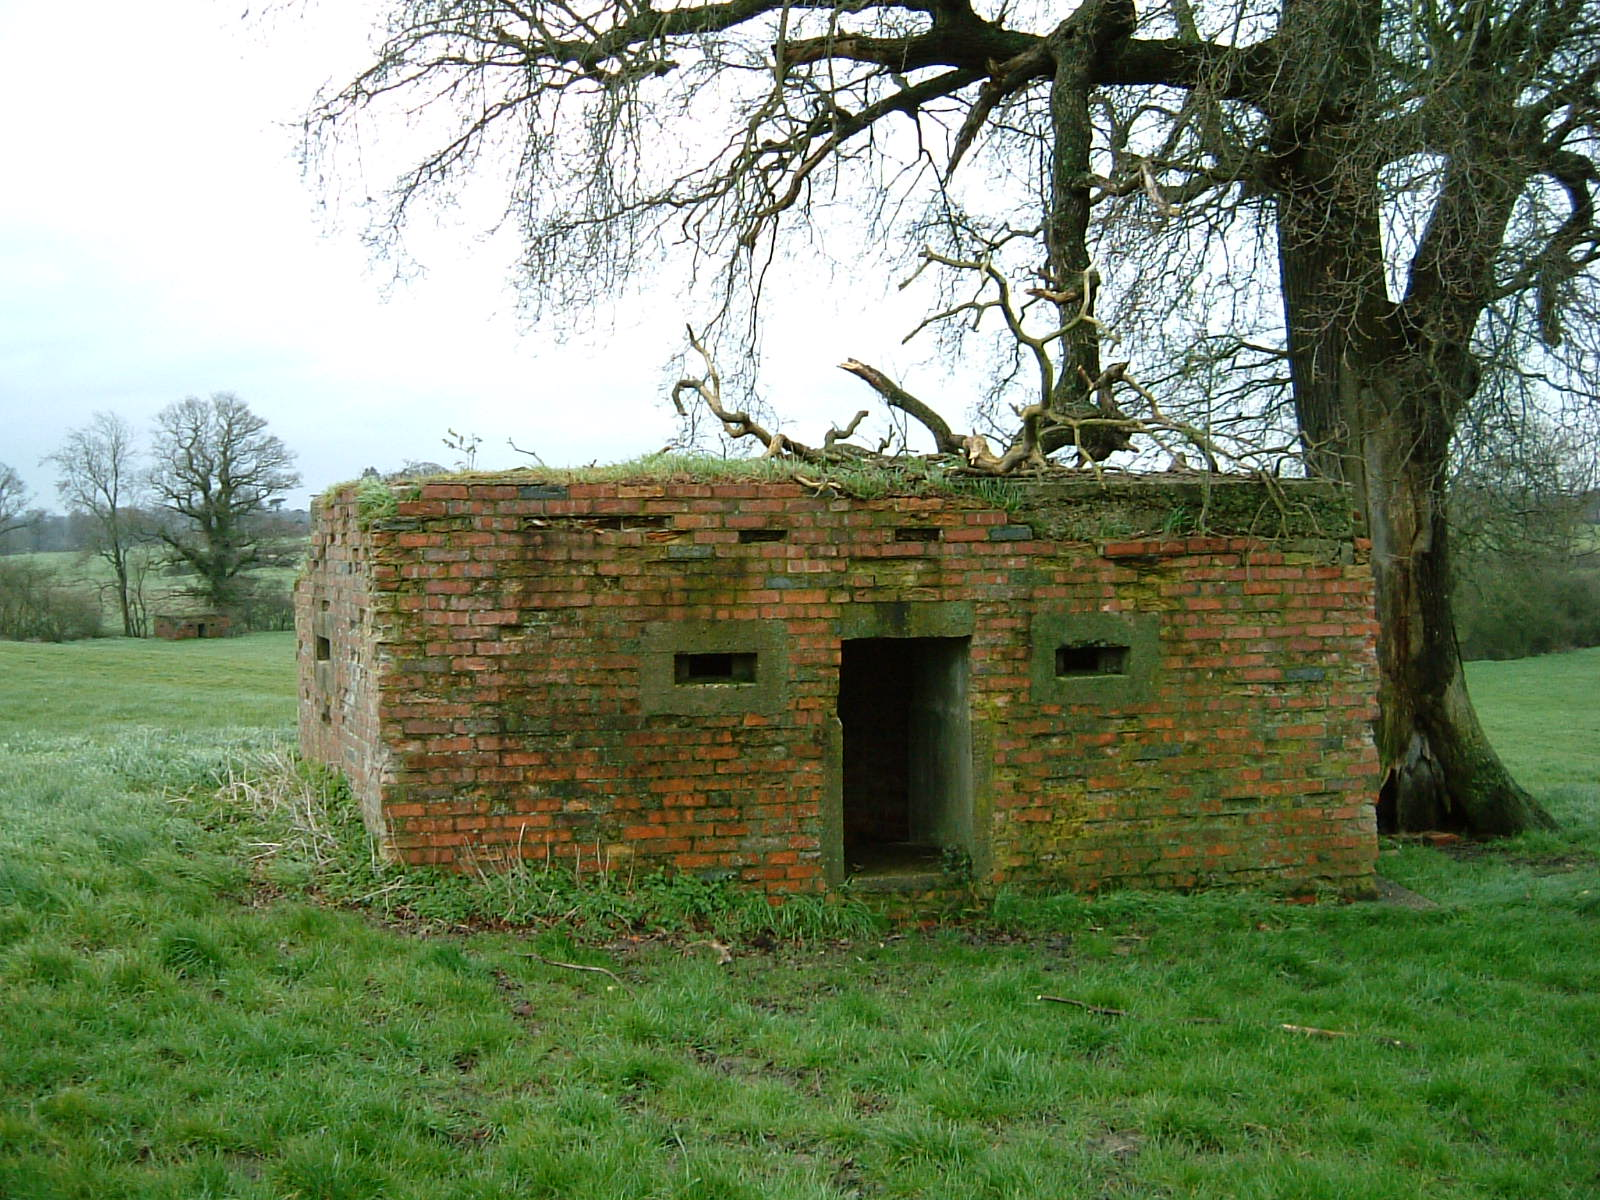 Back of pillbox showing its two cast embrasures